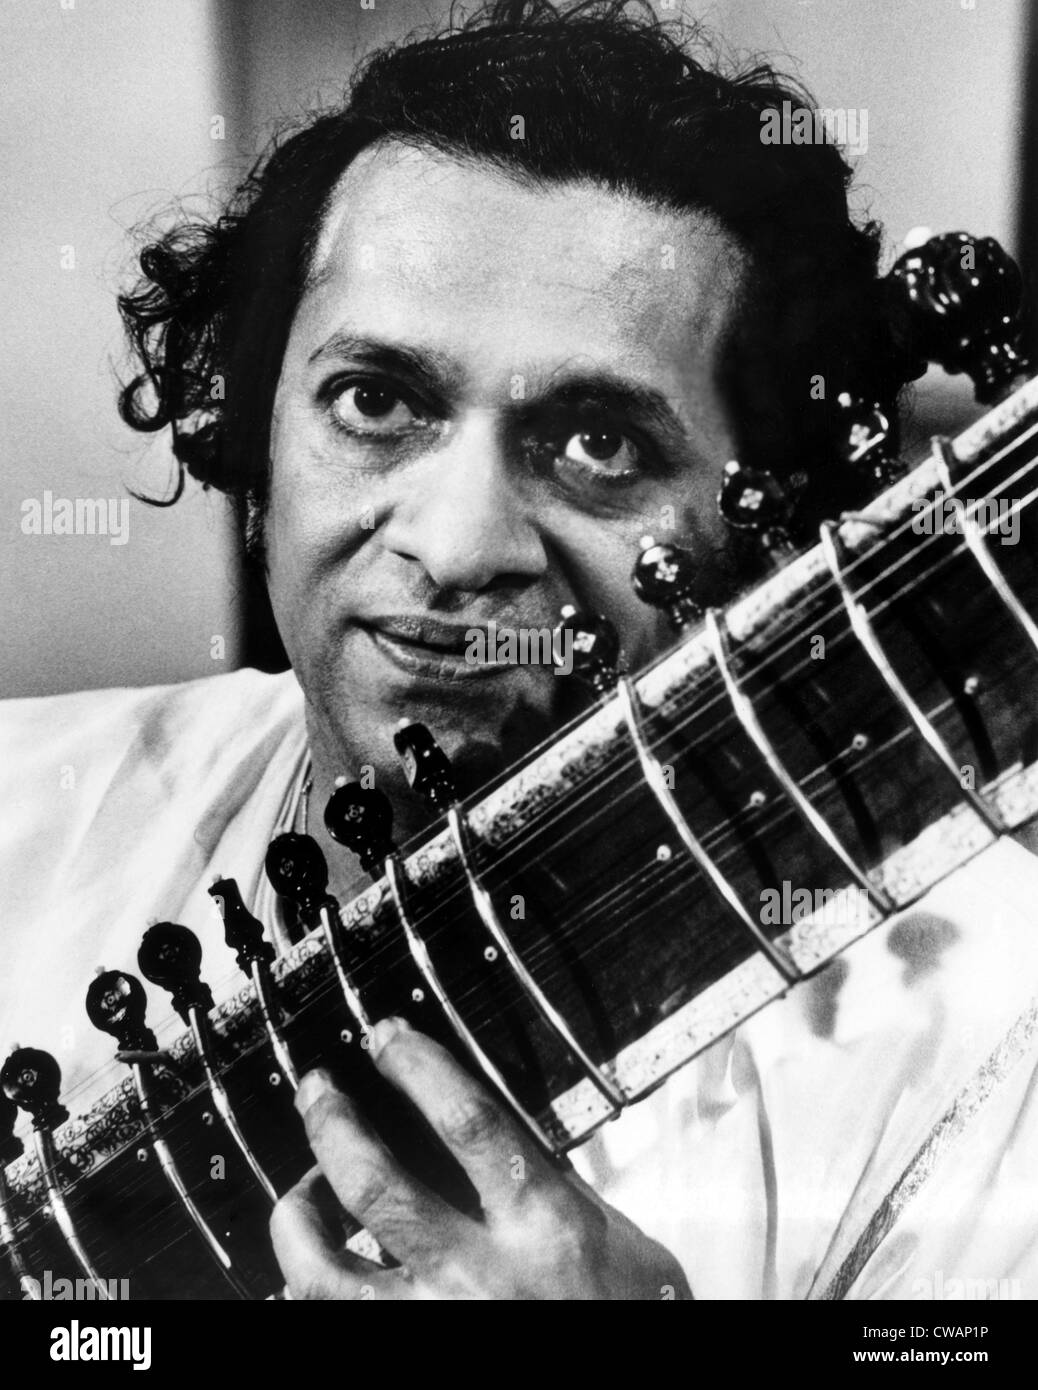 Ravi Shankar, músico, compositor, intérprete y estudioso, retrato, 1960. Cortesía: CSU Archives / Everett Collection Foto de stock